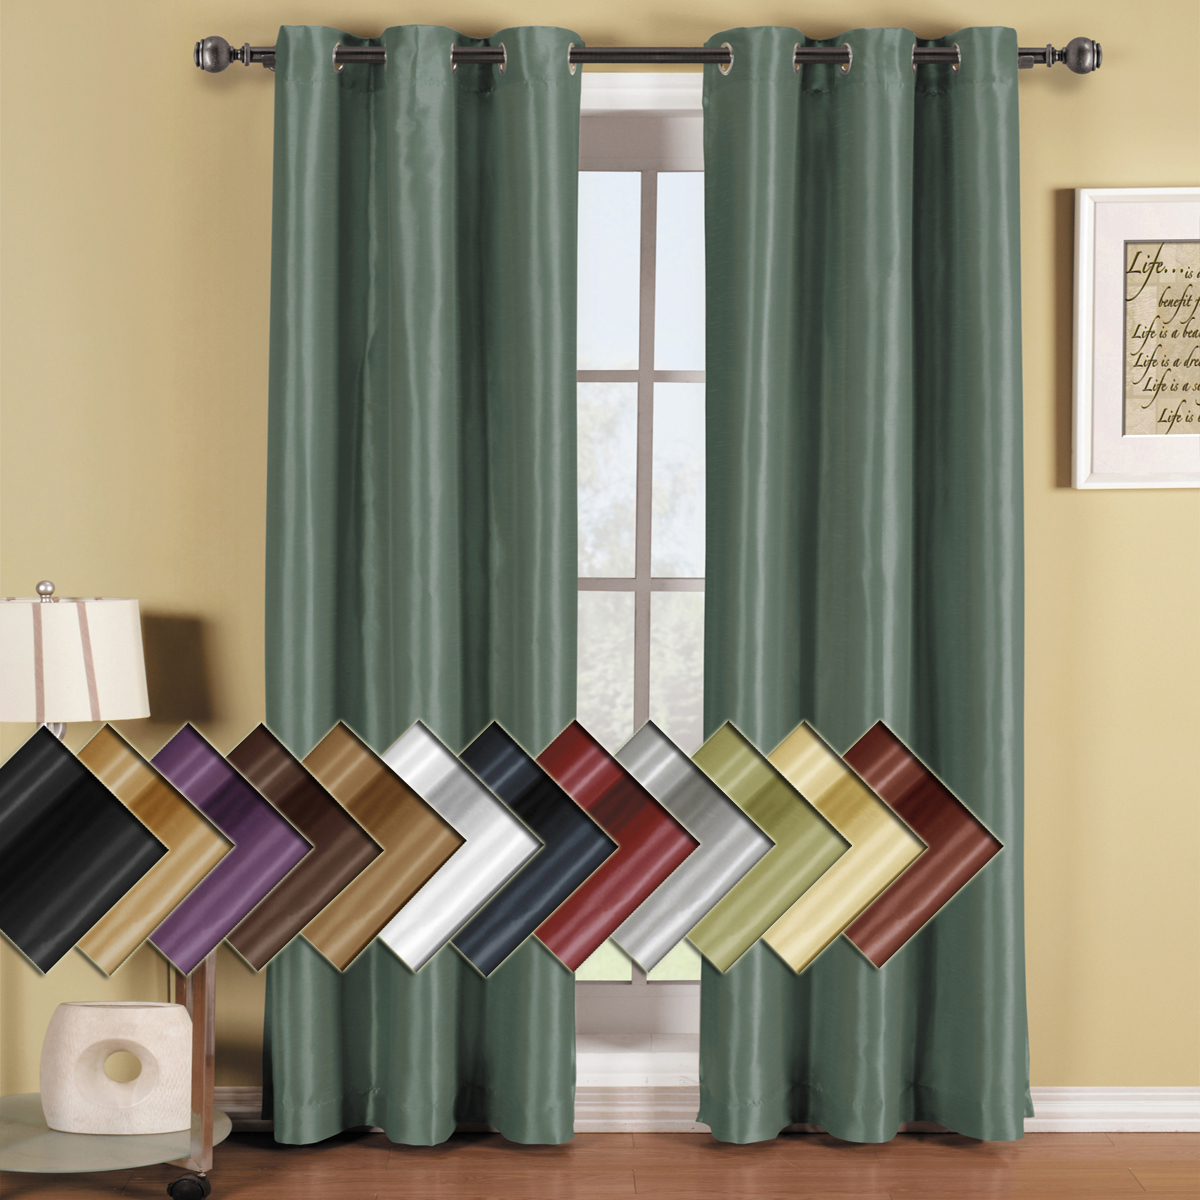 Thermal Curtains Cheap | Thermal Insulated Curtains | Thermal Backed Drapes